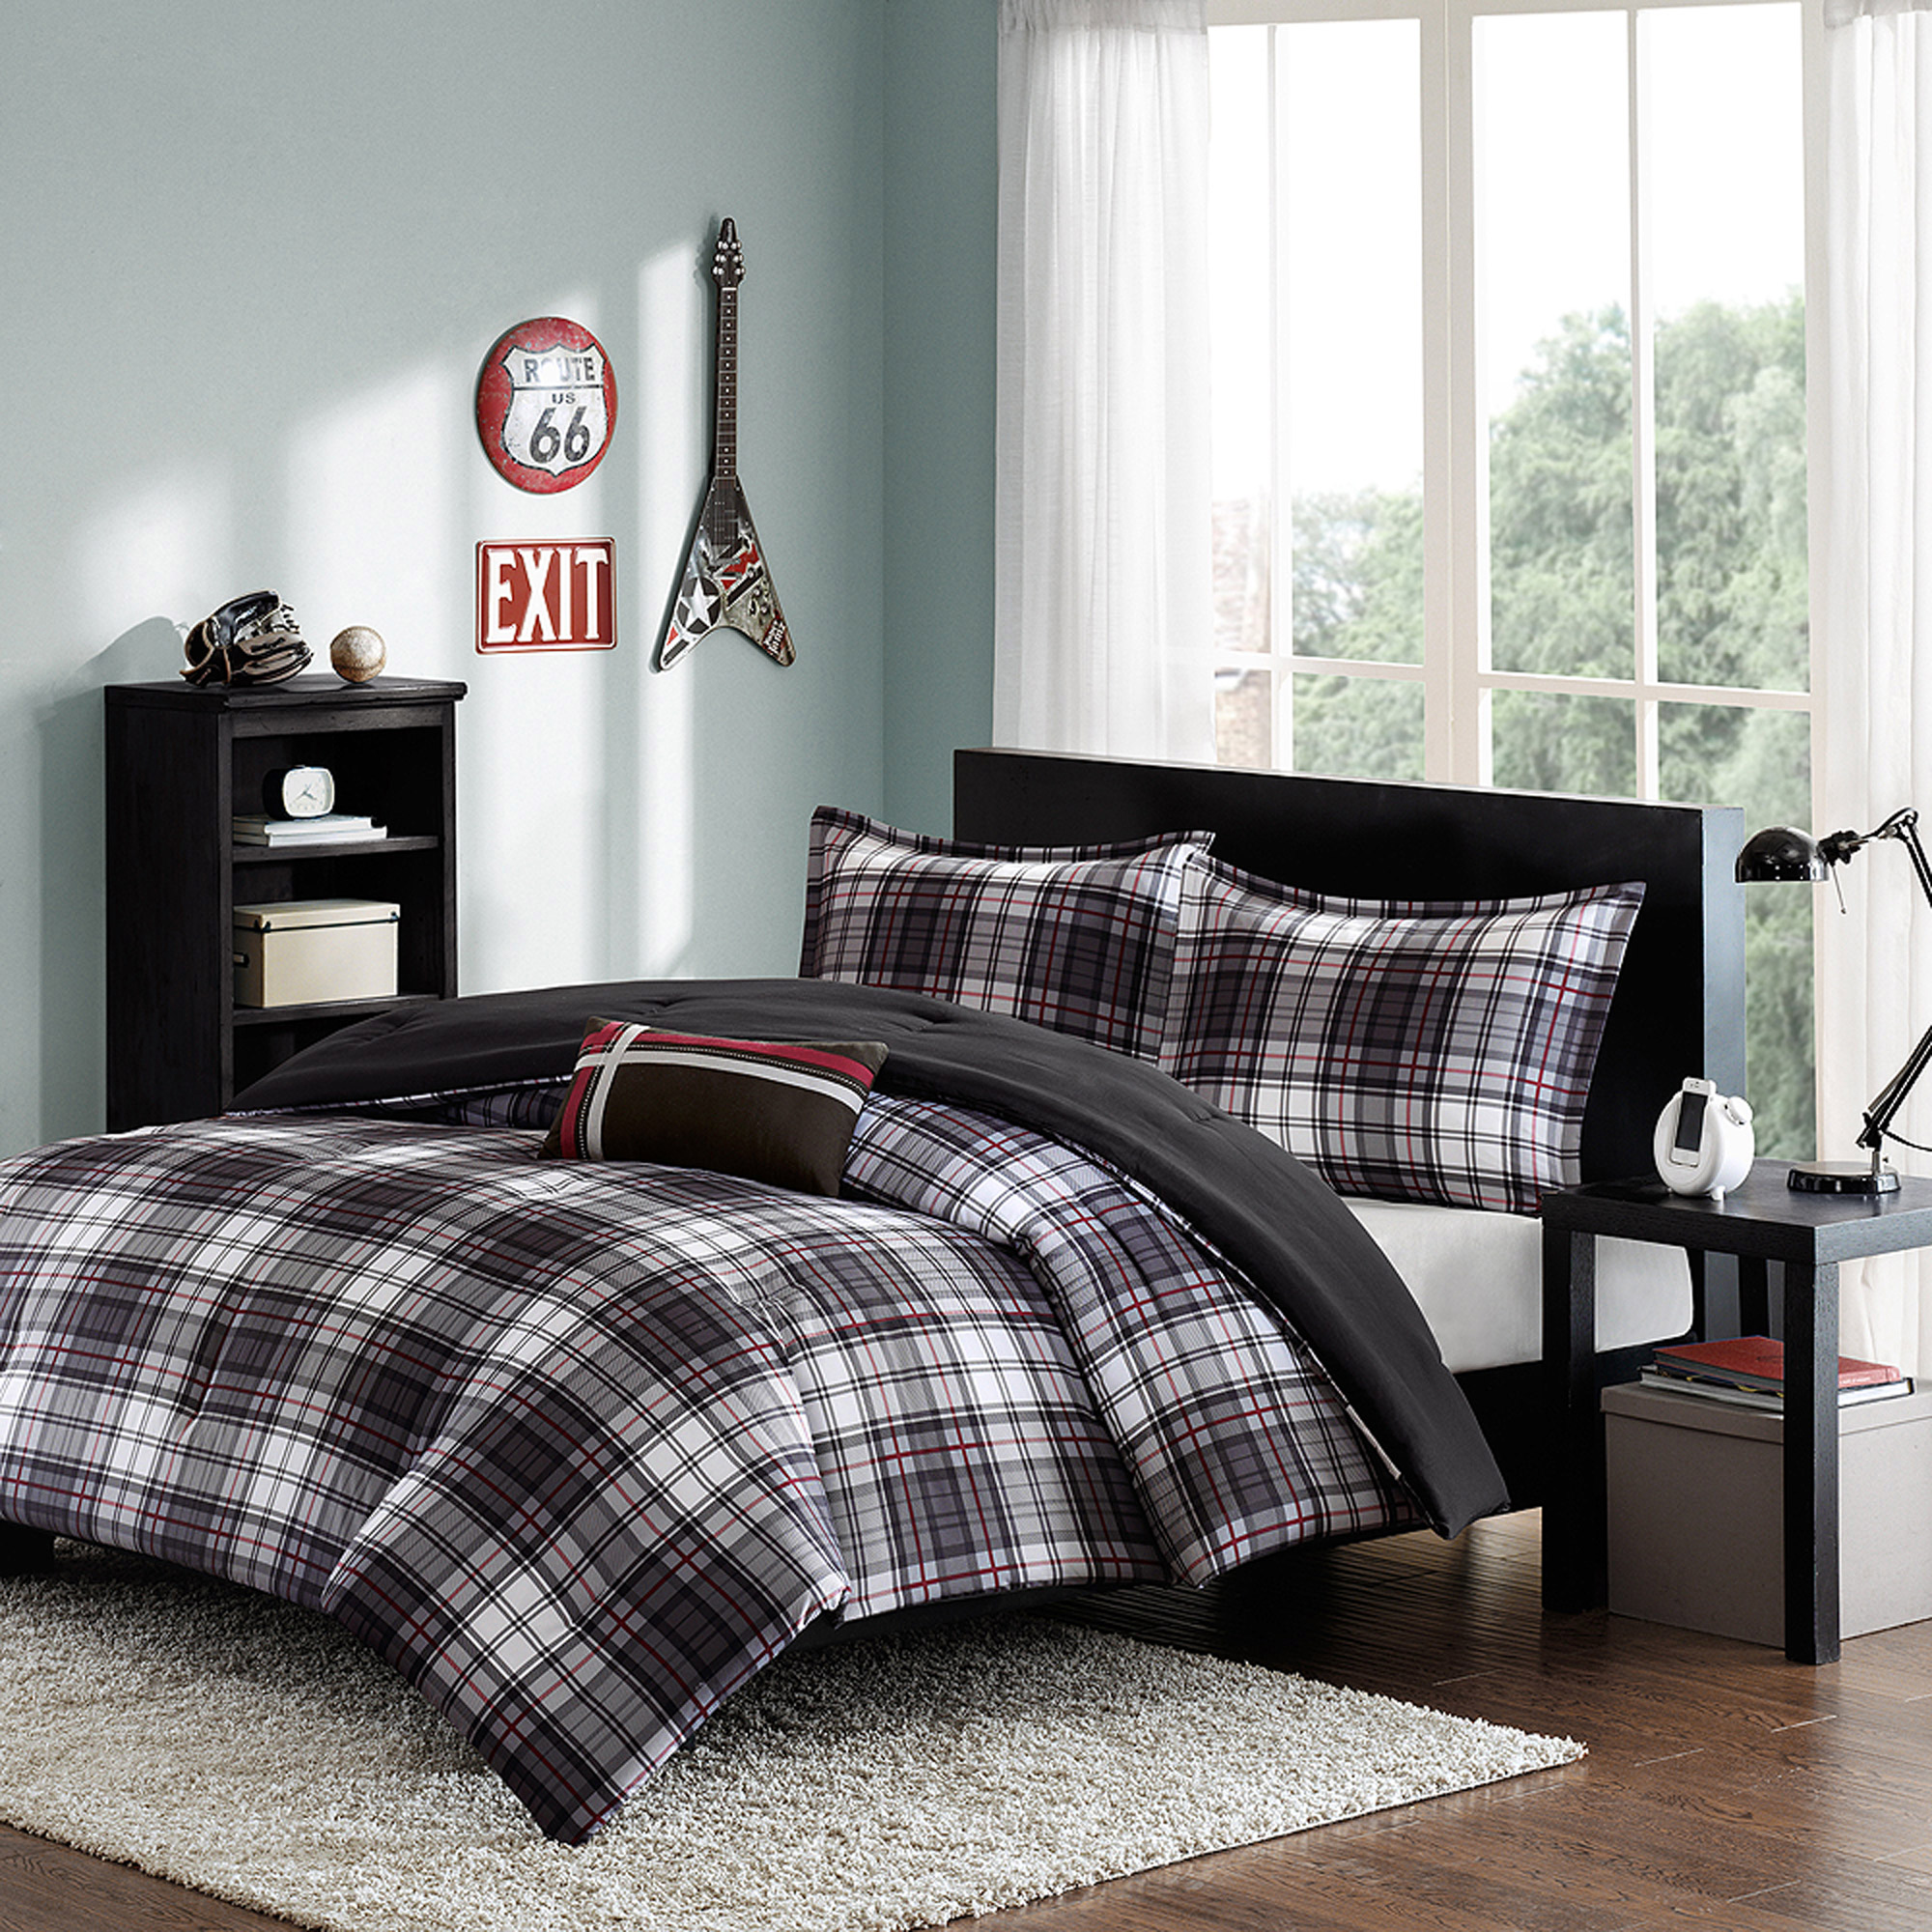 Home Essence Teen Shawn Printed Comforter Bedding Set